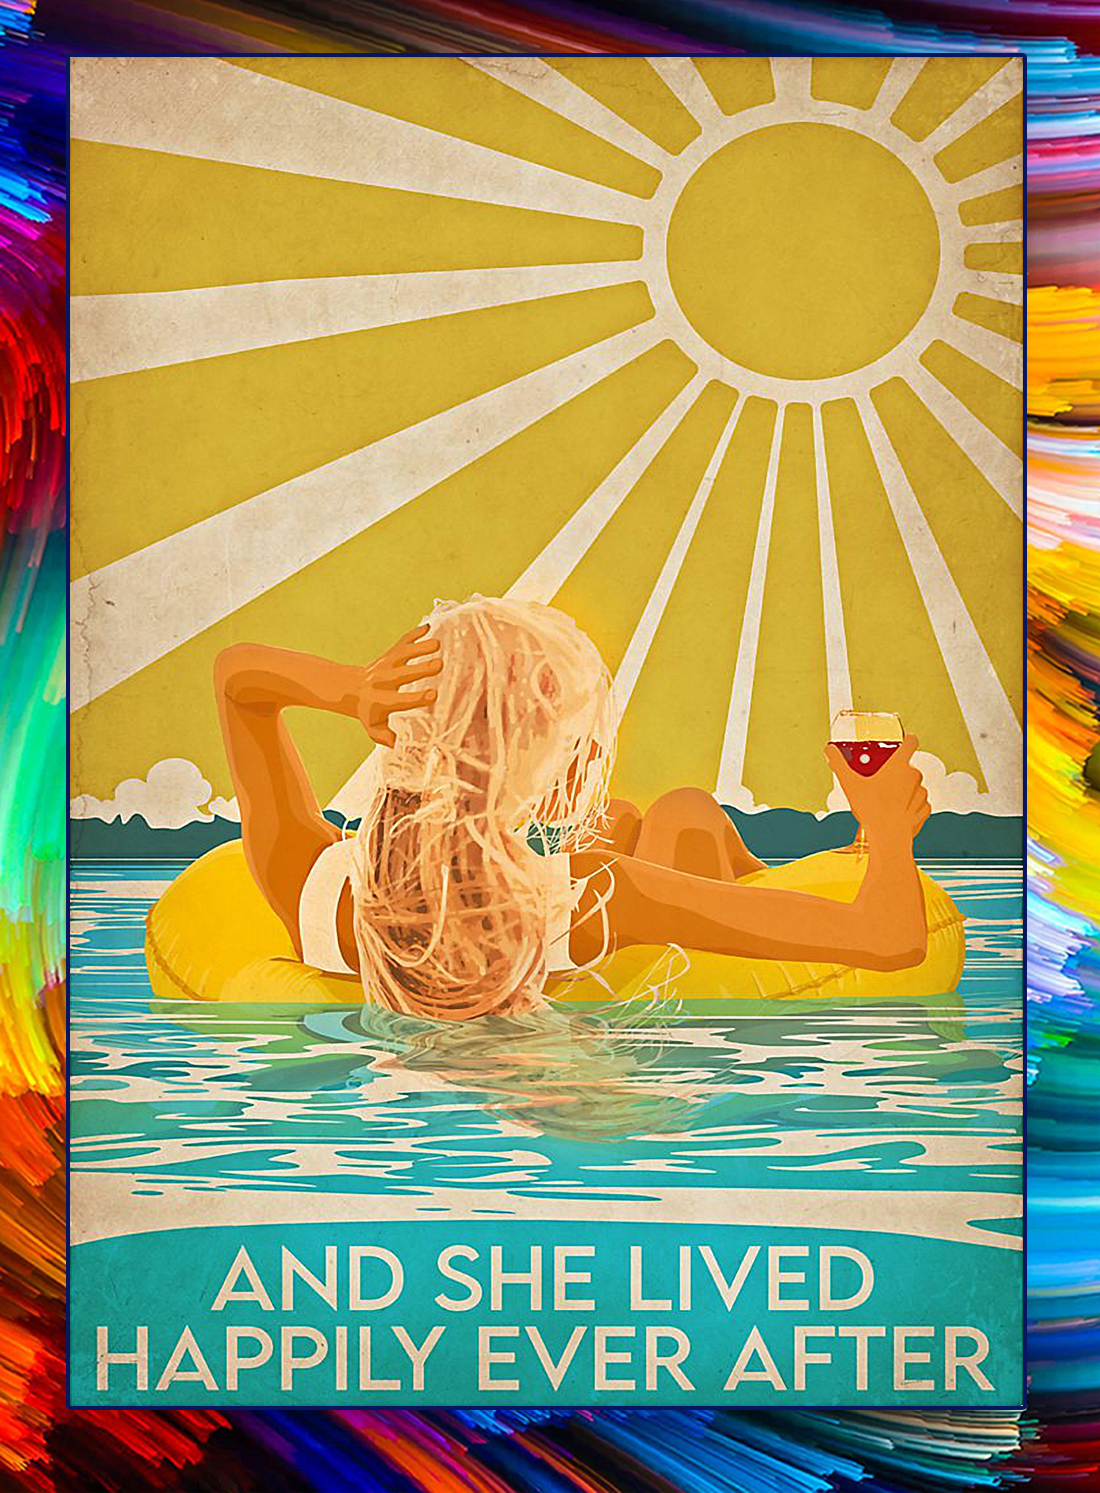 Swimming blonde girl and she lived happily after poster